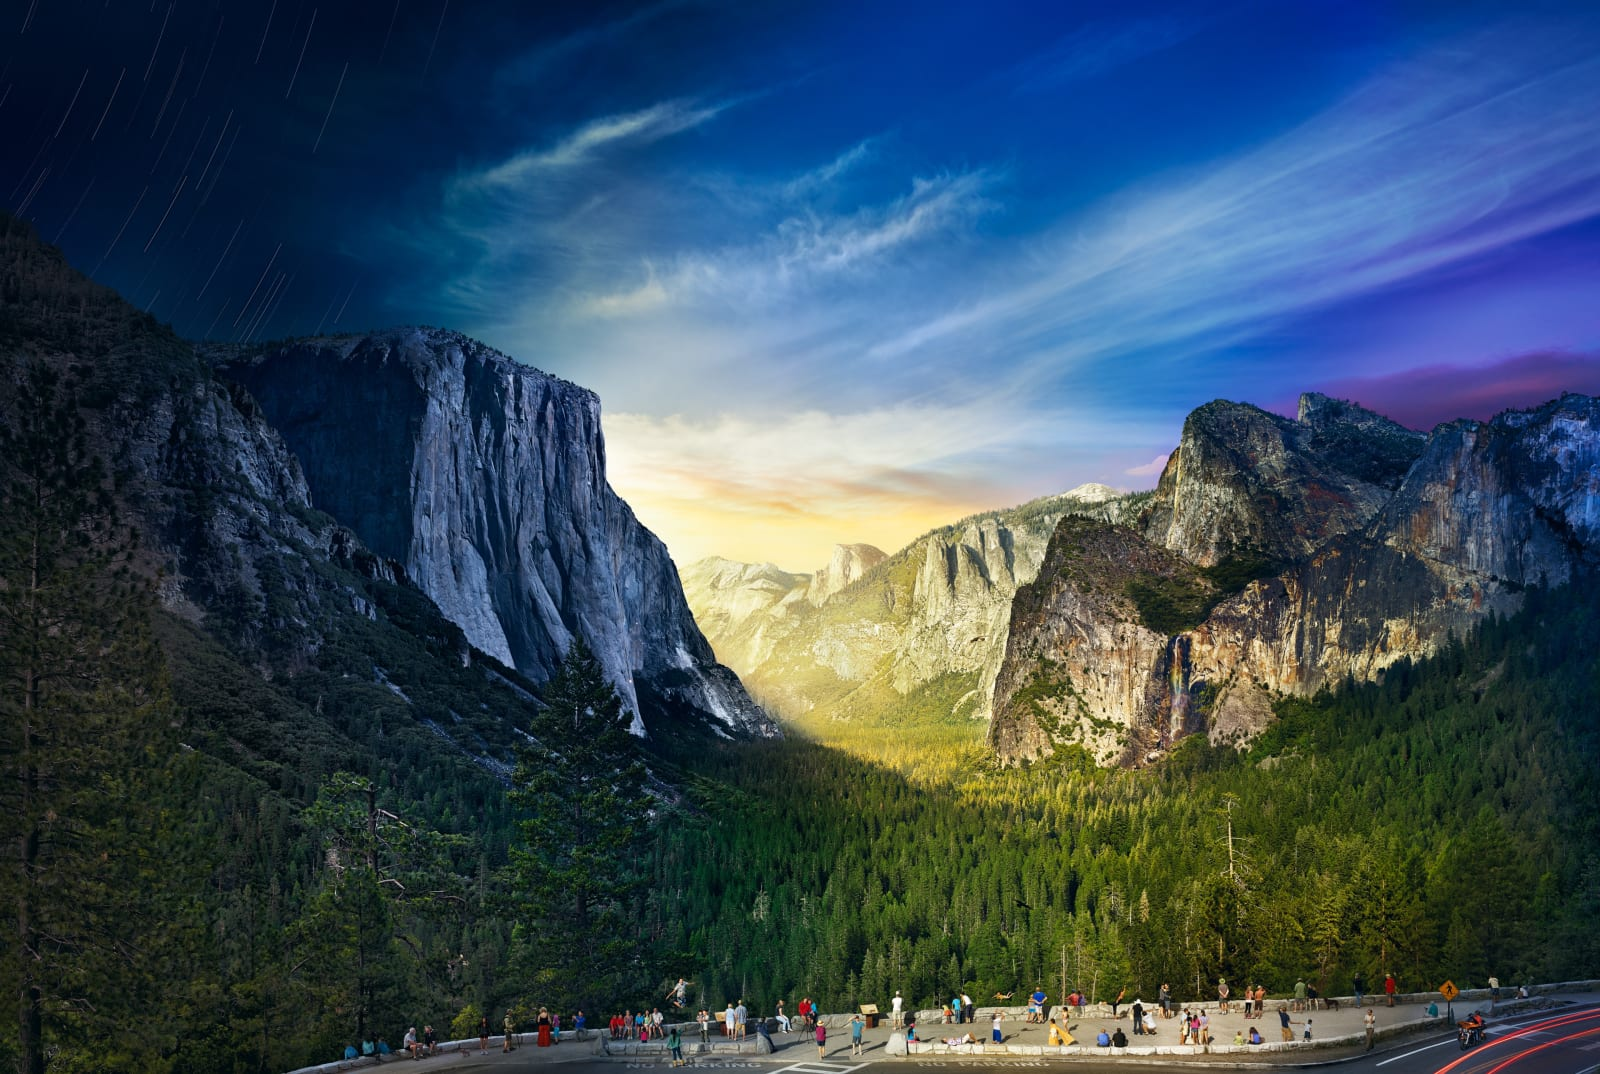 Stephen Wilkes Tunnel View, Yosemite National Park, Day to Night, 2014 Signed on label verso 24 x 36 inch archival pigment print Edition of 50 32 x 48 inch archival pigment print Edition of 20 48 x 72 inch archival pigment print Edition of 12 60 x 89 1/2 inch archival pigment print Edition of 4